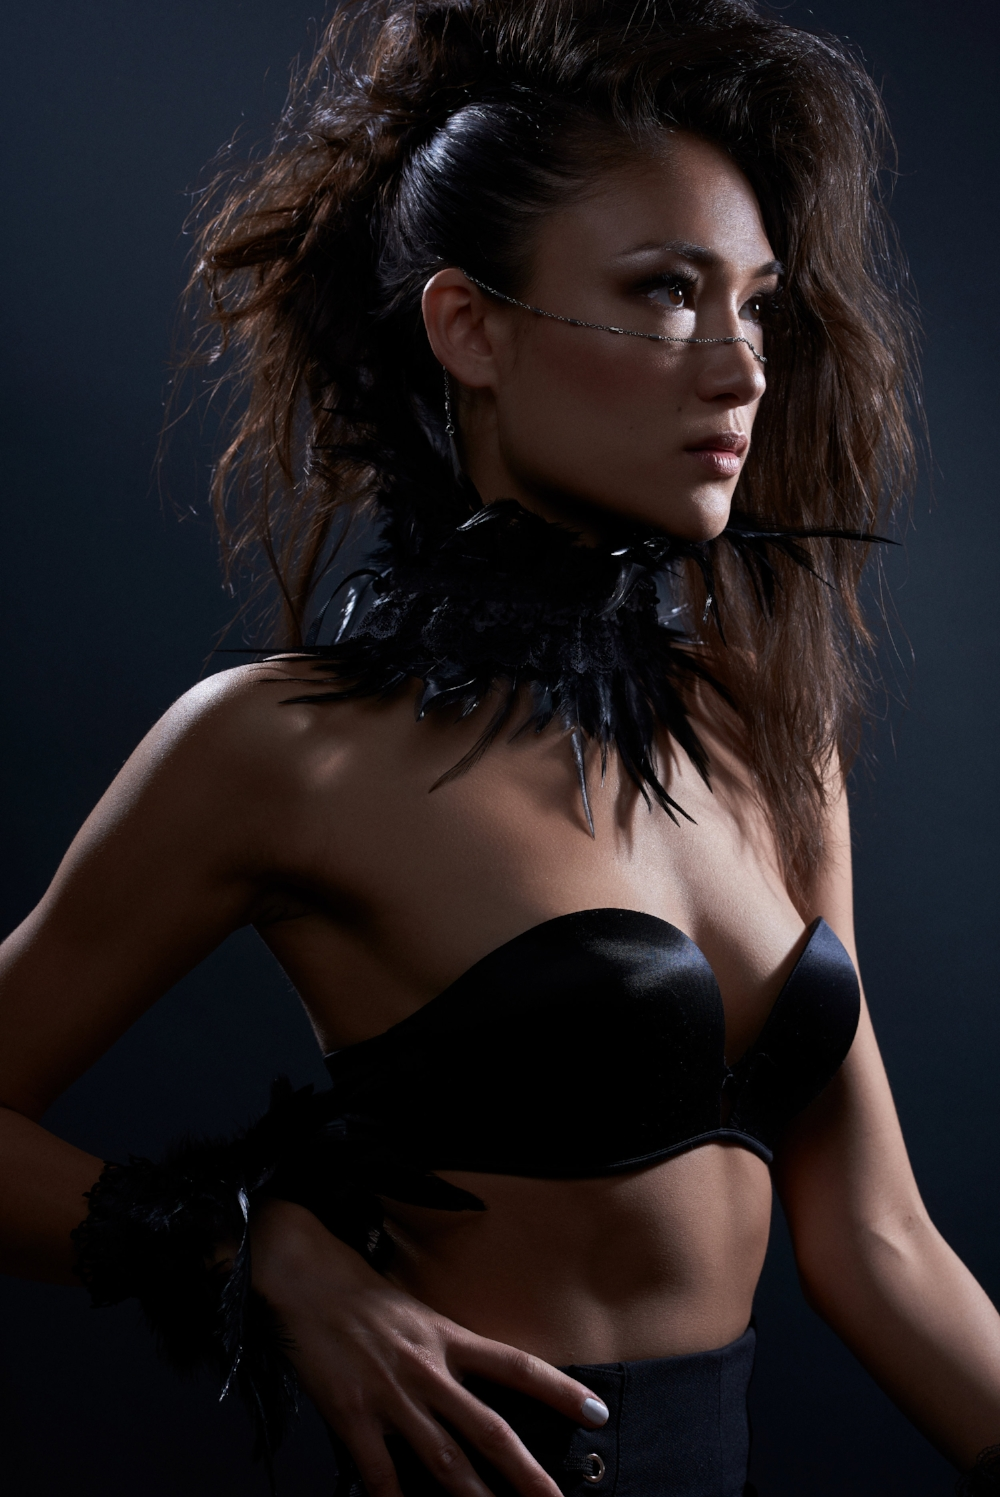 oriental model wearing feather collar with black strapless bra and vadana face jewellery